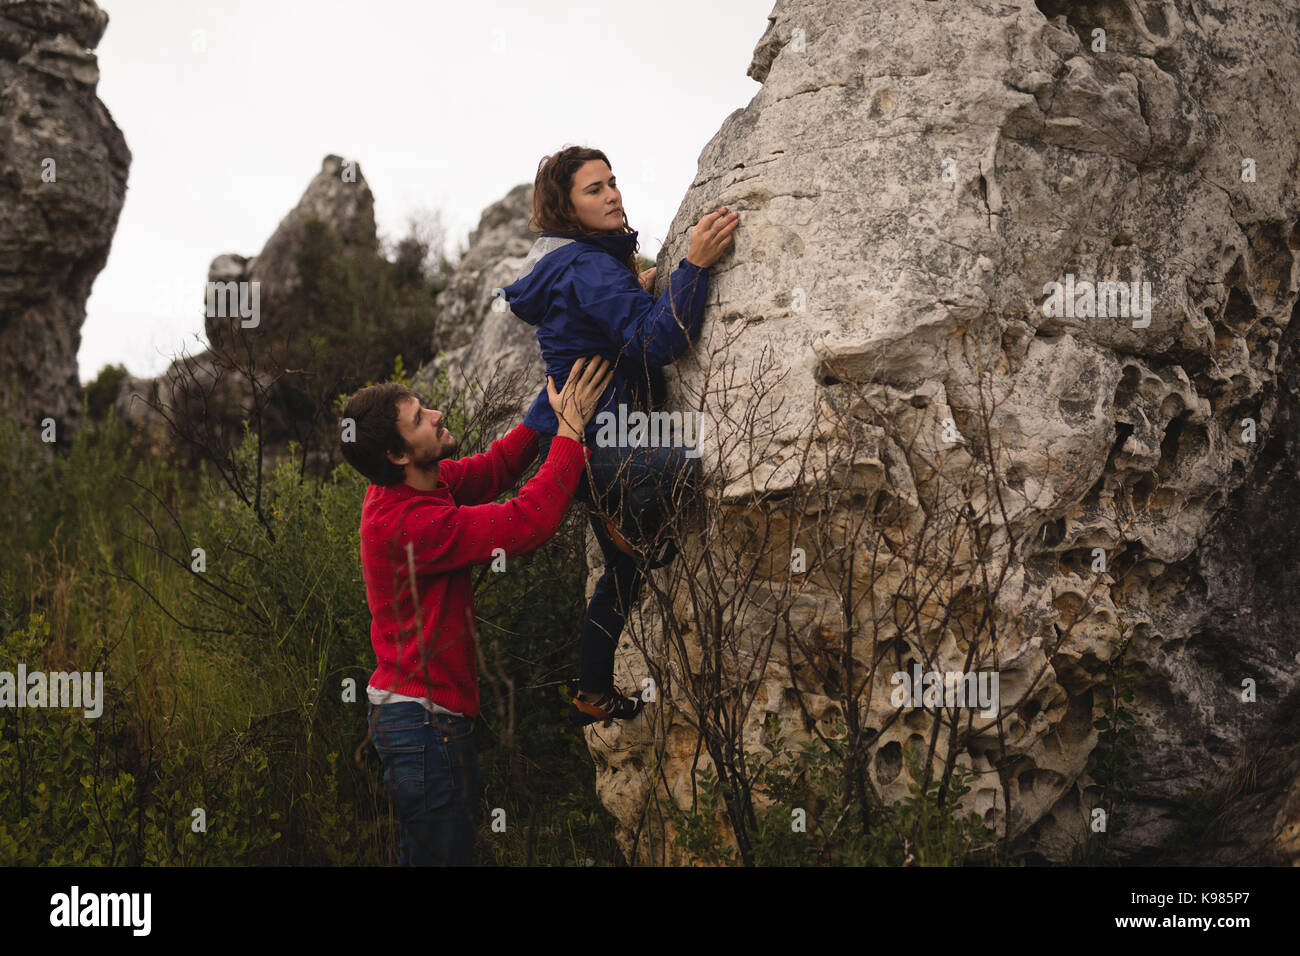 Man assisting woman in rock climbing on a sunny day - Stock Image